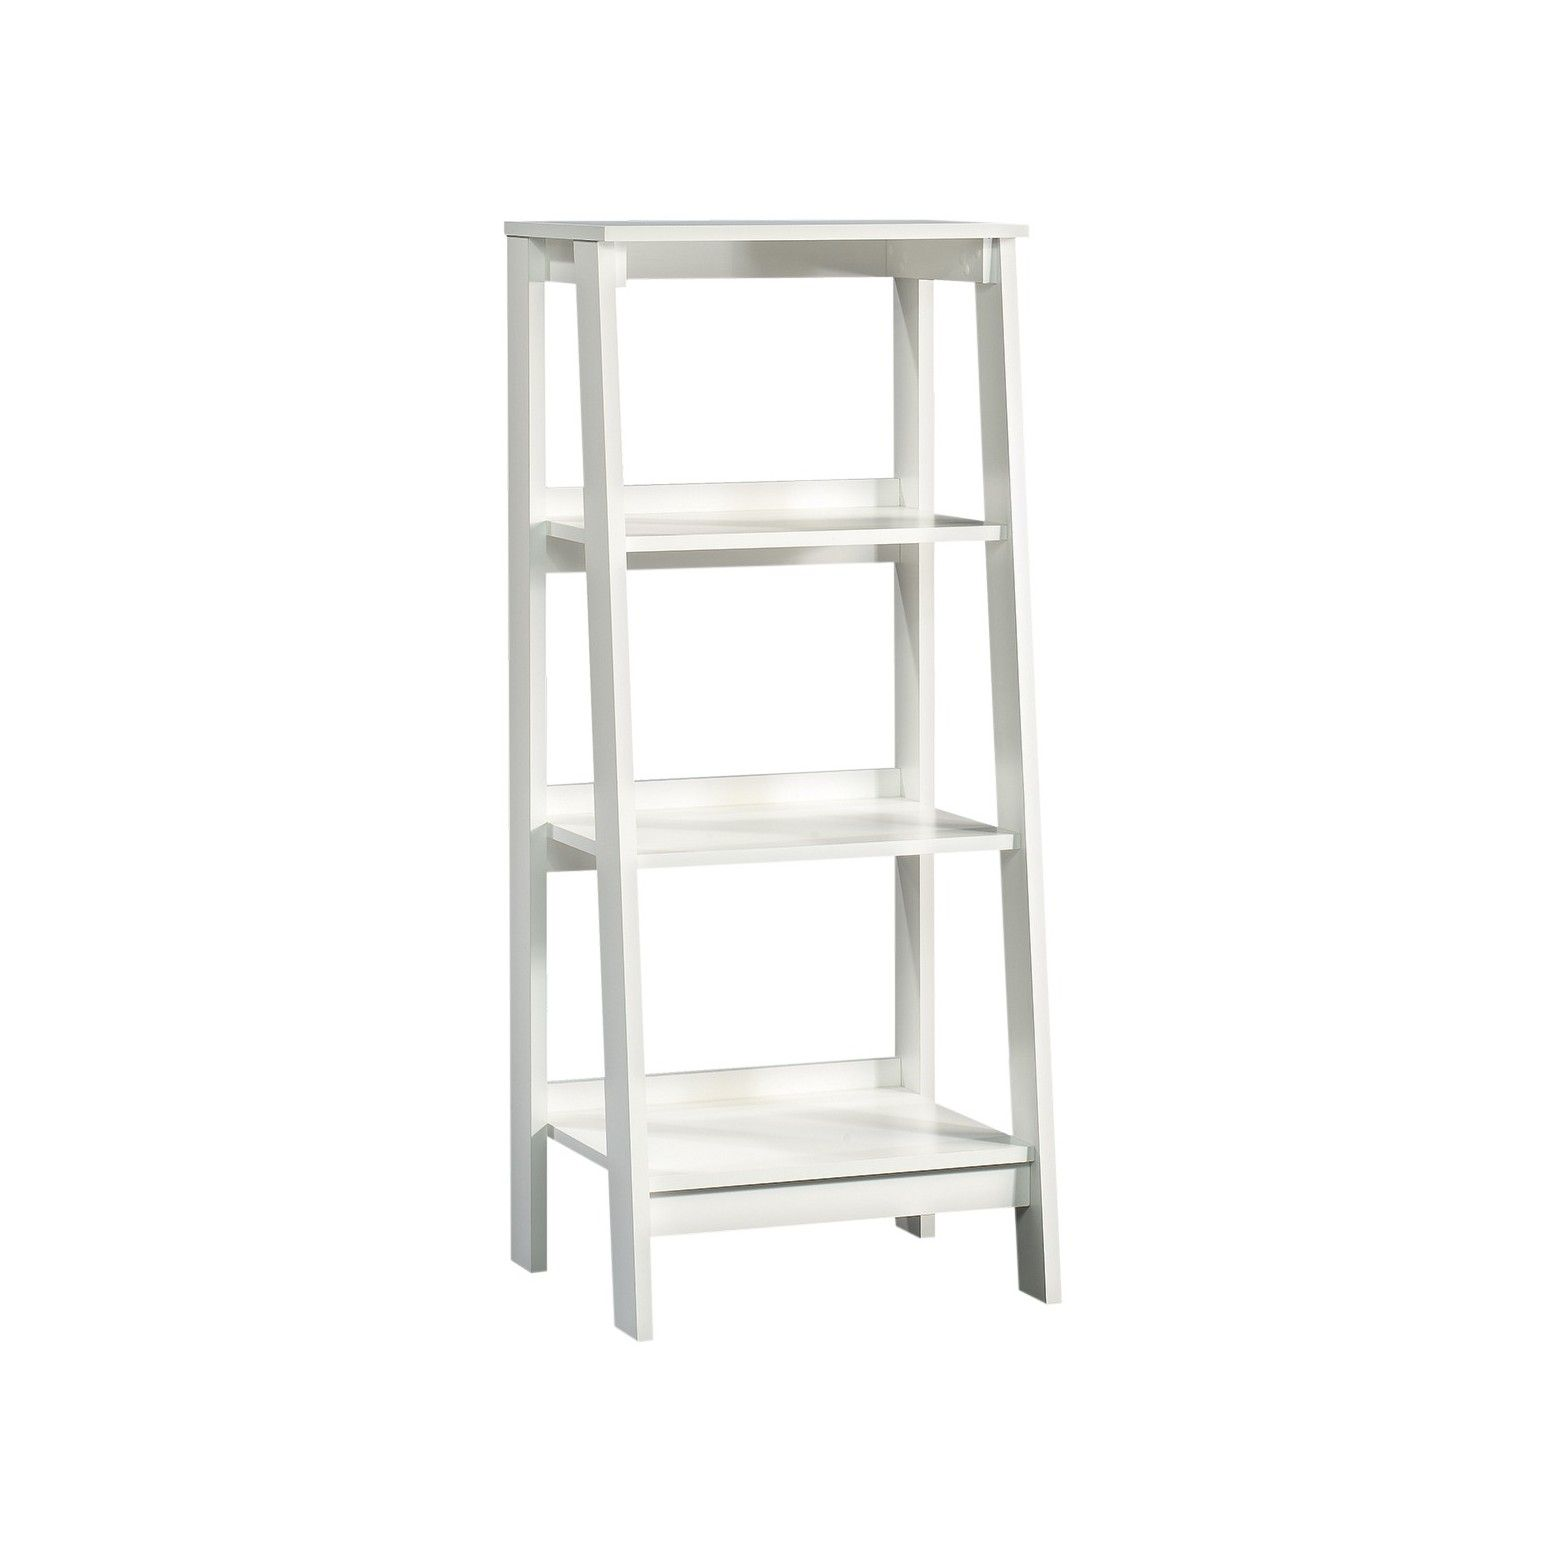 Ikea bookcase with glass doors  Trestle  Shelf Bookcase White  Room Essentials  Open shelves